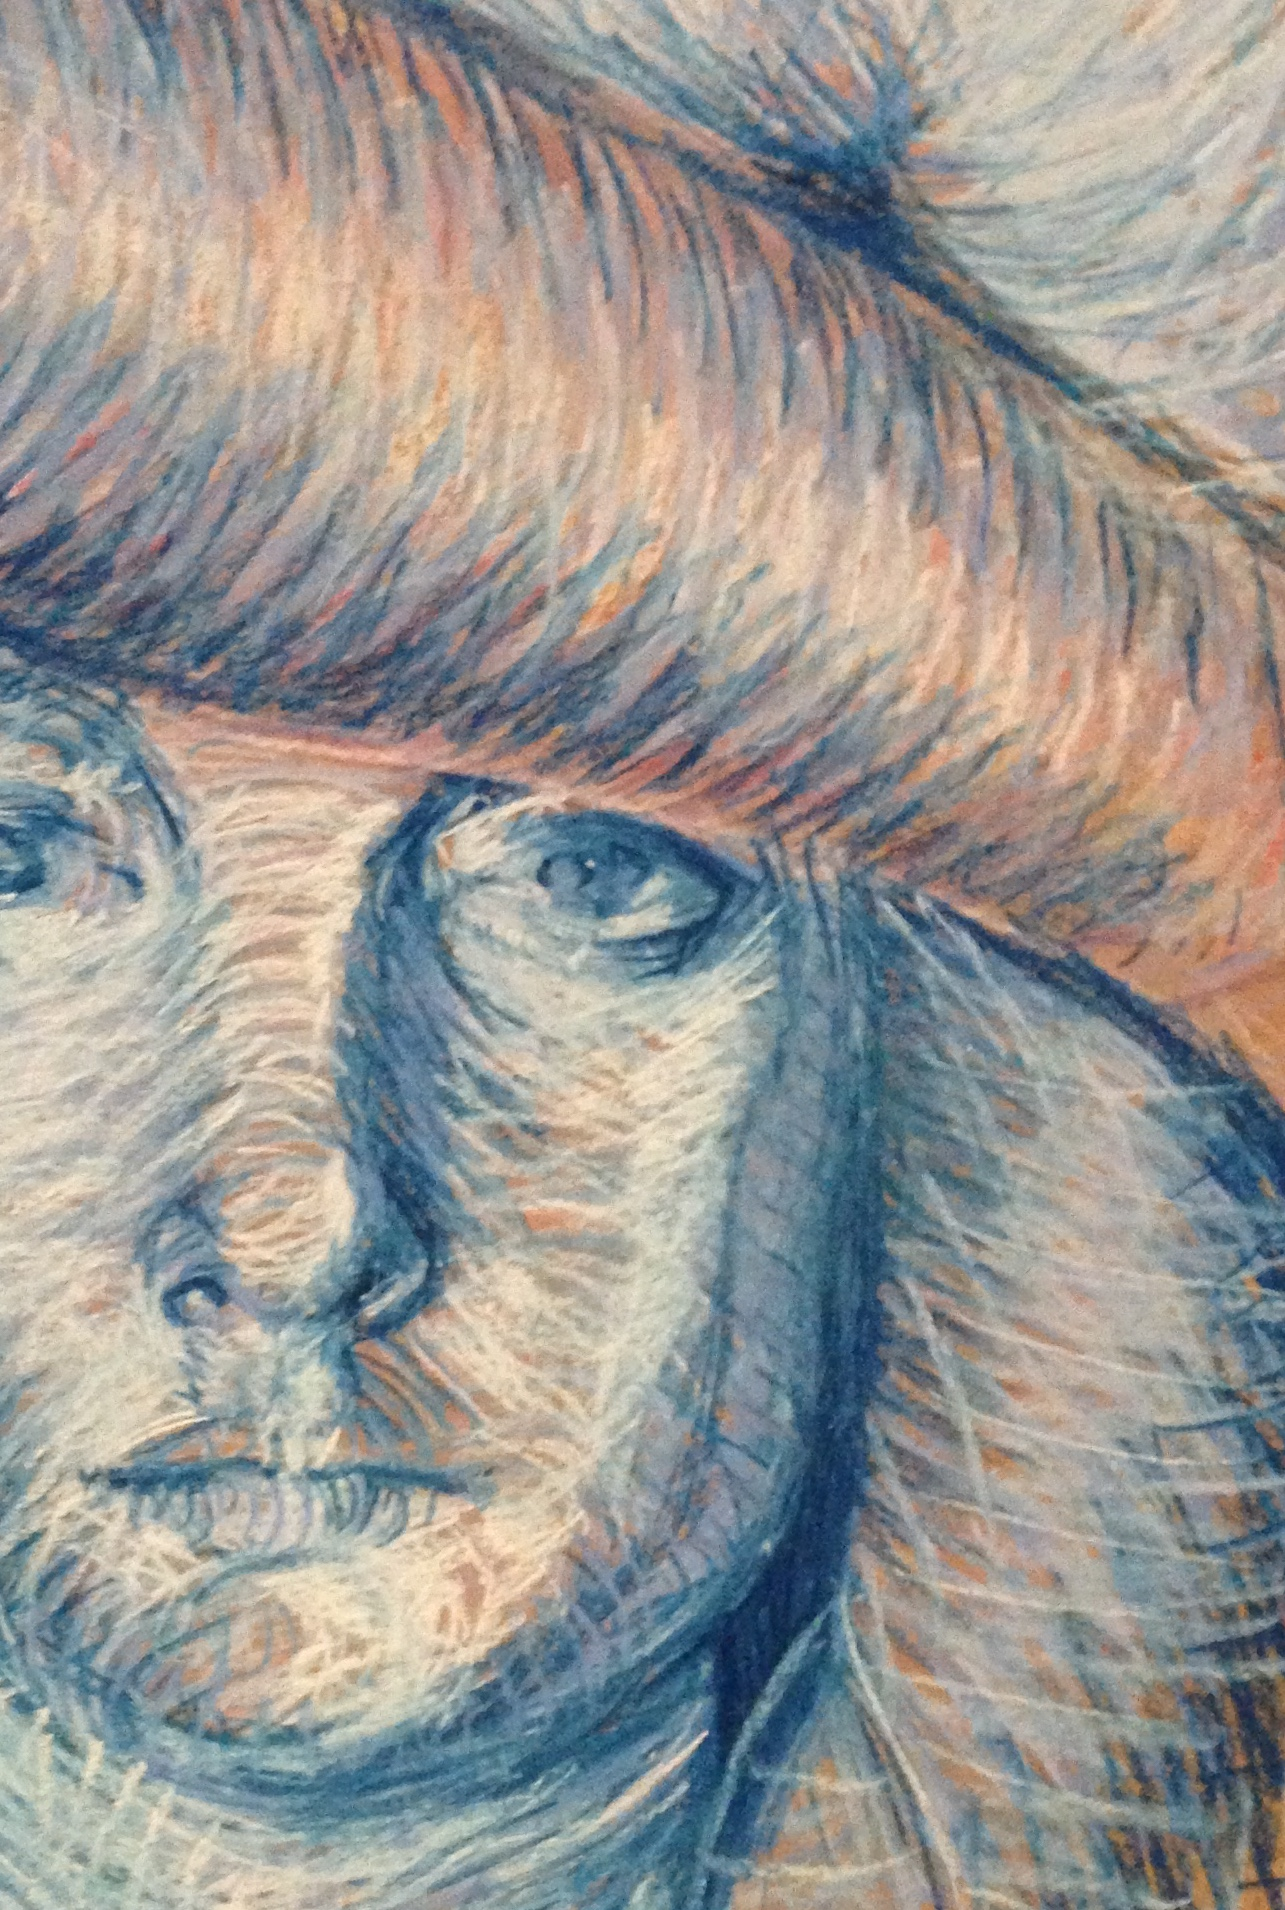 Juliana Mendelsohn, pastel on brown paper, detail, 13 years old student